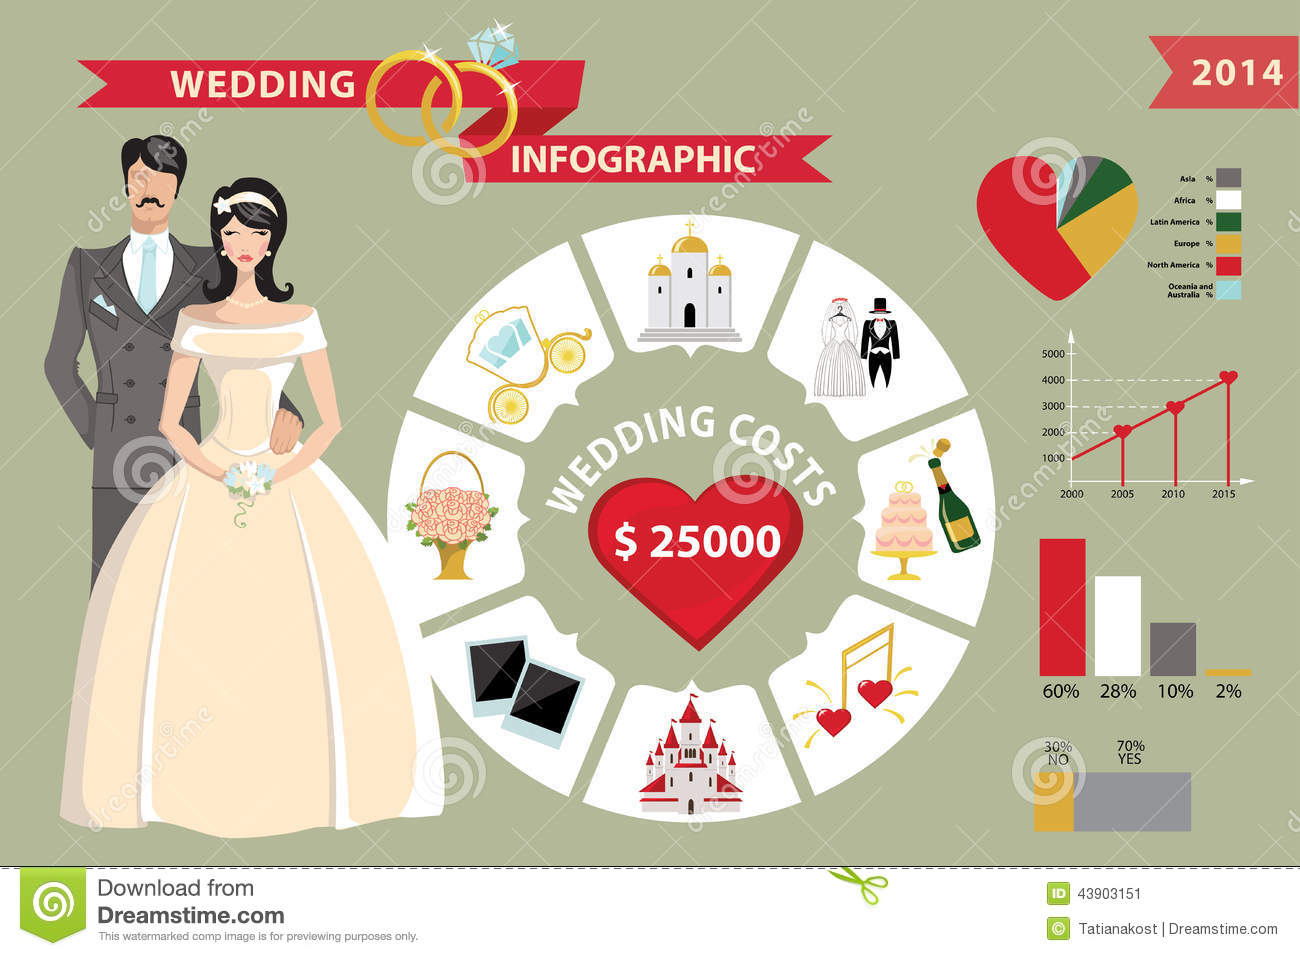 Wedding Infographics With Cartoon Bride And GroomStatistics Design TemplateVector Circle Business Concepts Flat Icons For Loop Report Or